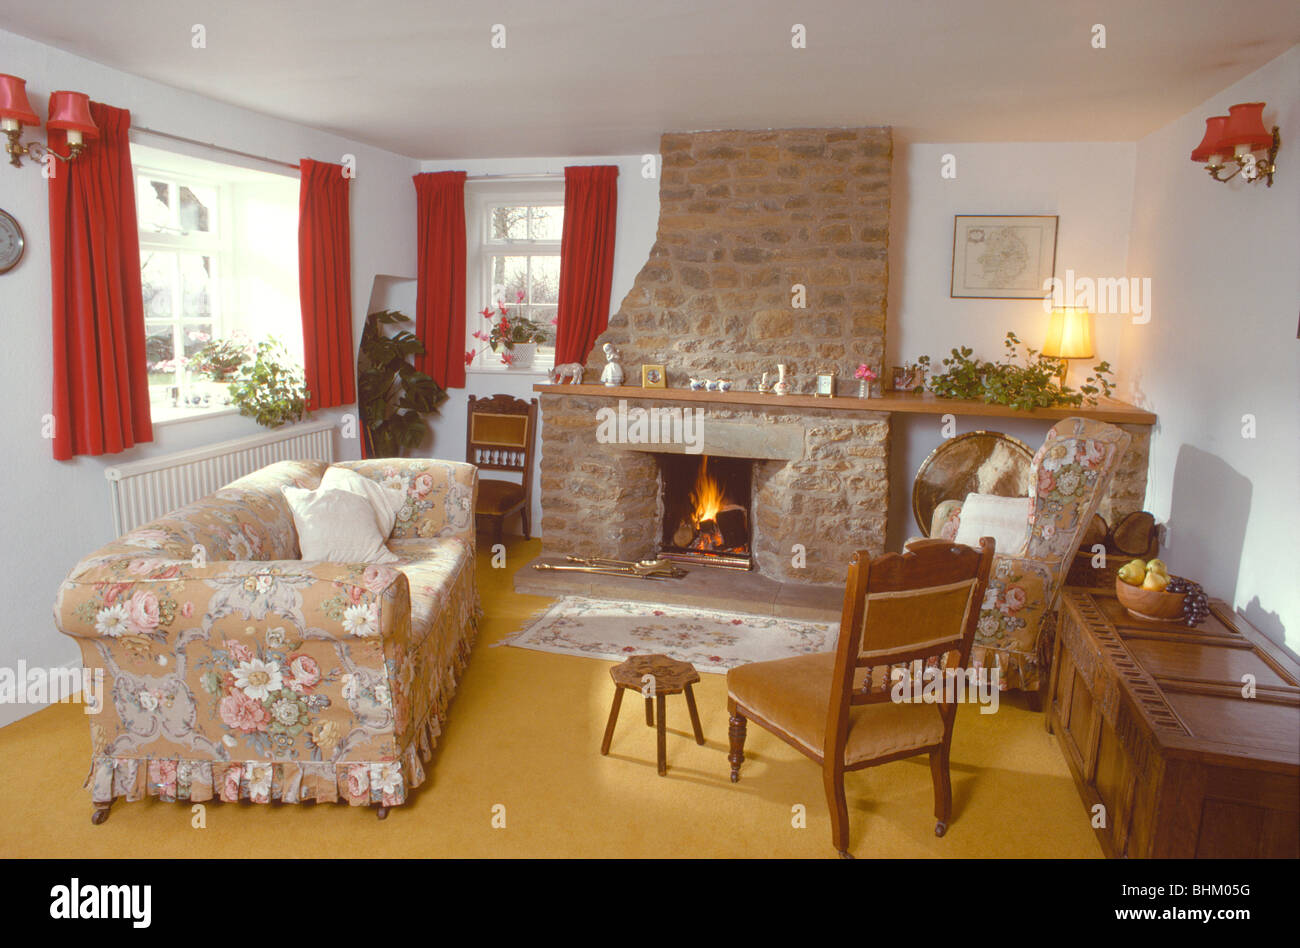 Floral Loose Cover On Sofa In Front Of Stone Fireplace With Lighted